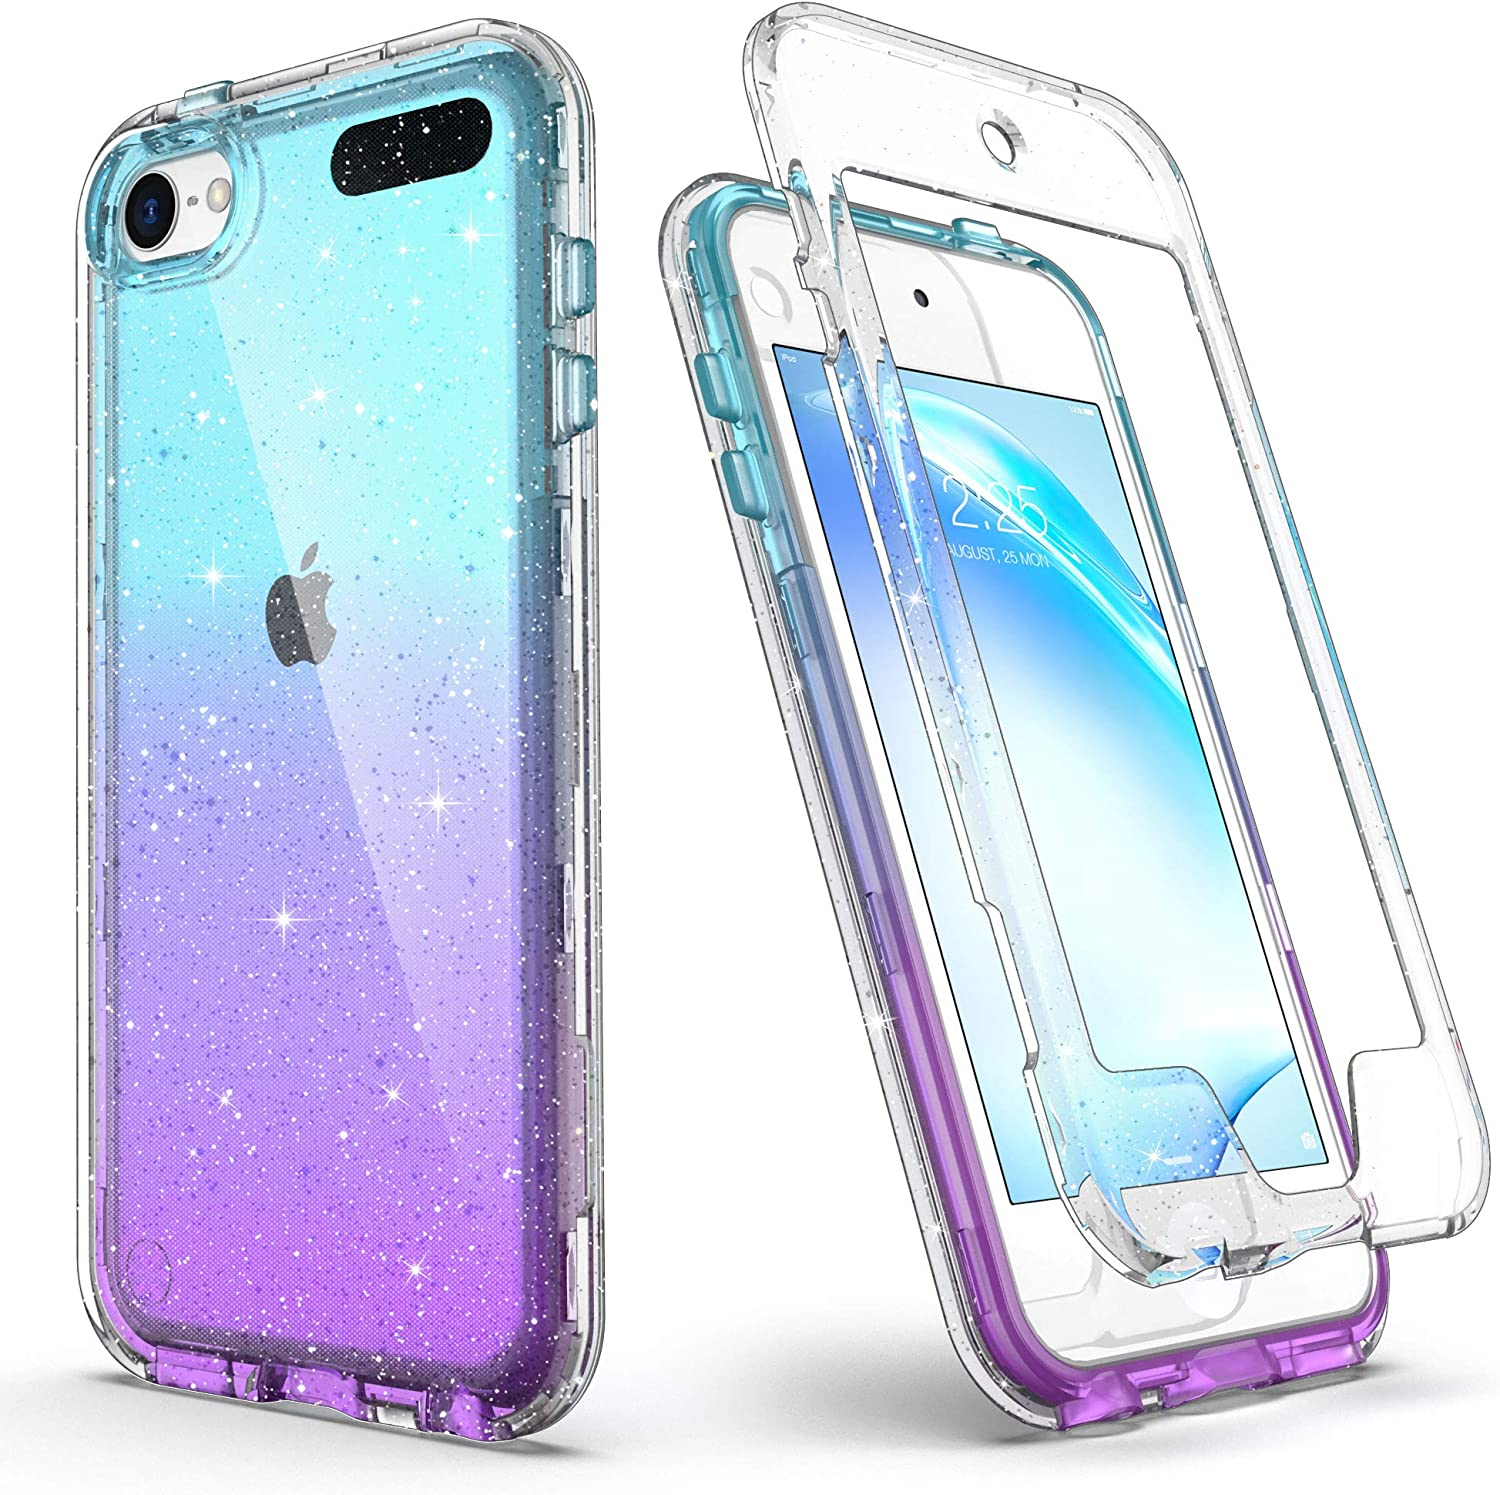 New Shipping Free Imguardz Compatible with iPod Touch NEW 7 Case 6 i